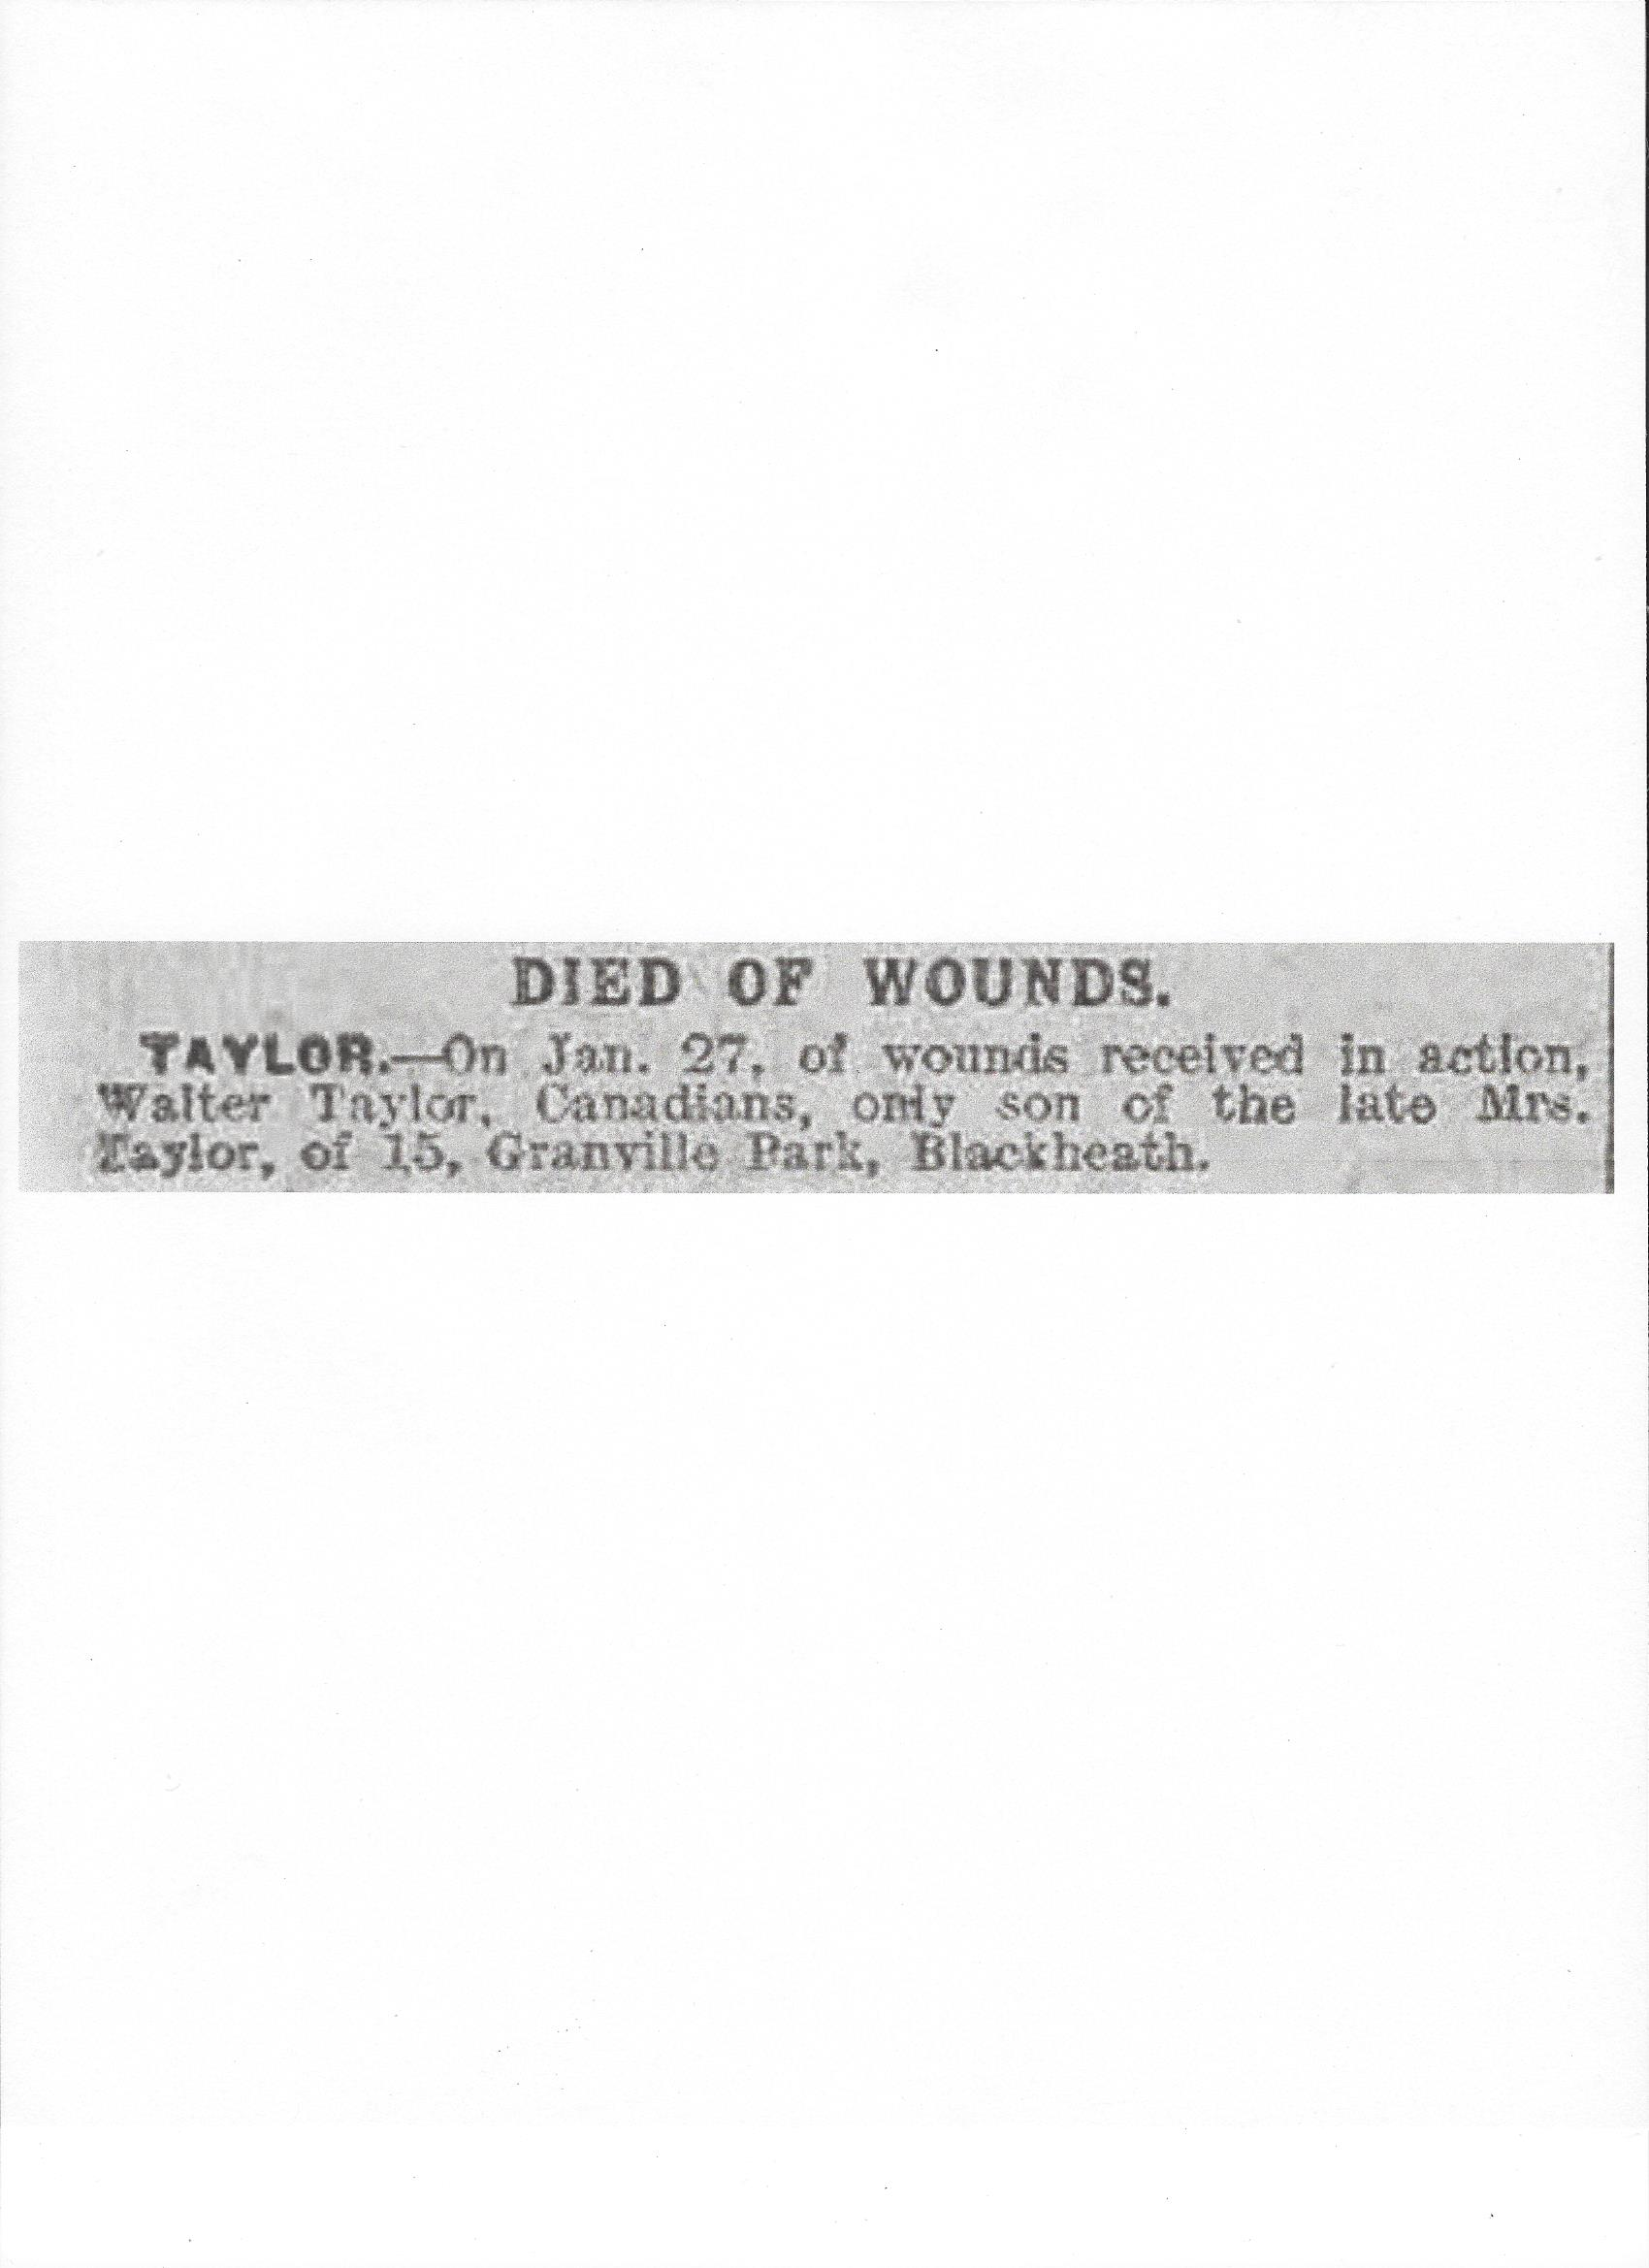 Newspaper clipping– Taken from the Daily Telegraph of February 2, 1918. Image taken from web address of https://www.telegraph.co.uk/news/ww1-archive/12215090/Daily-Telegraph-February-2-1918.html